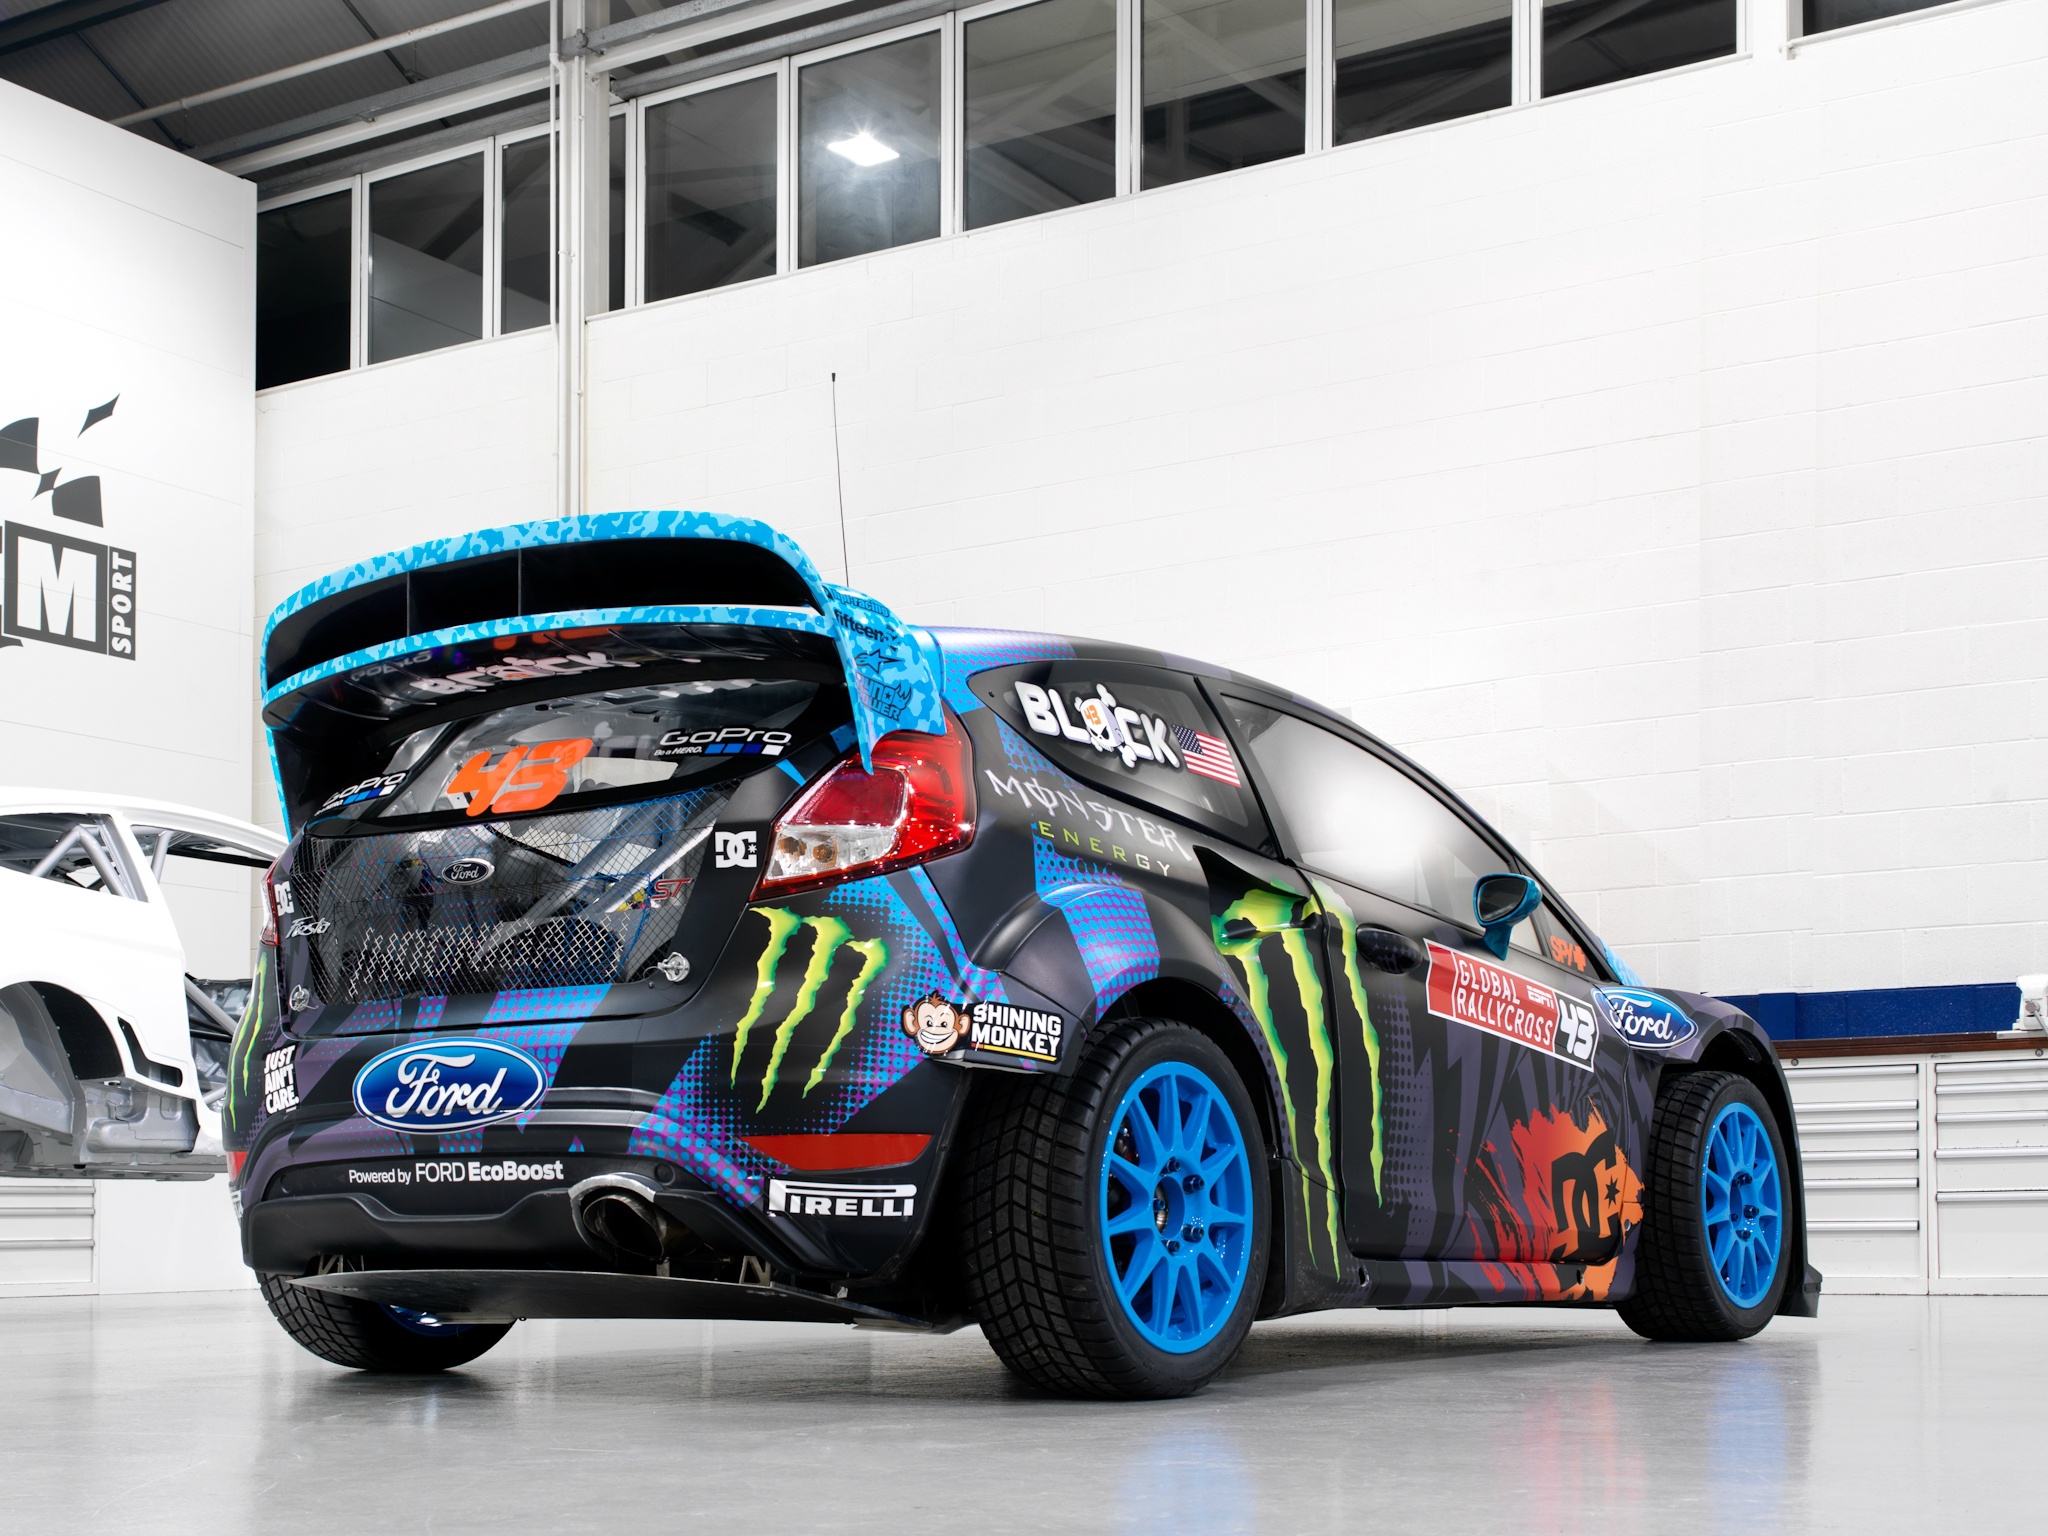 2013 ford fiesta s t rx43 rallycross race racing tuning r. Black Bedroom Furniture Sets. Home Design Ideas